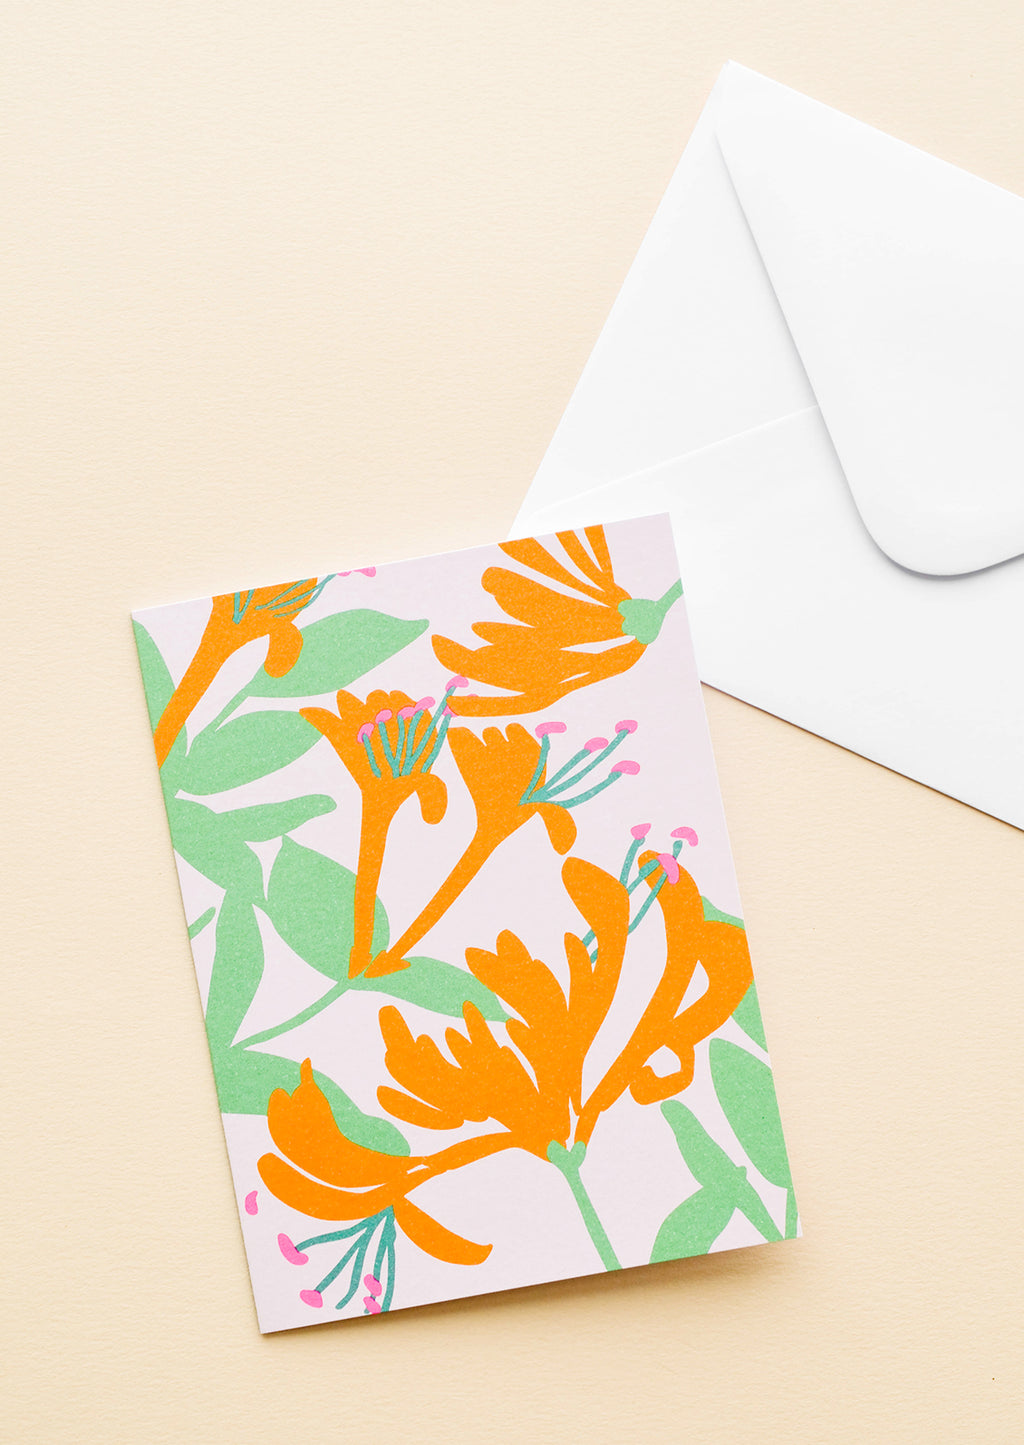 Honeysuckle: Pink notecard with colorful drawing of a honeysuckle and white envelope.